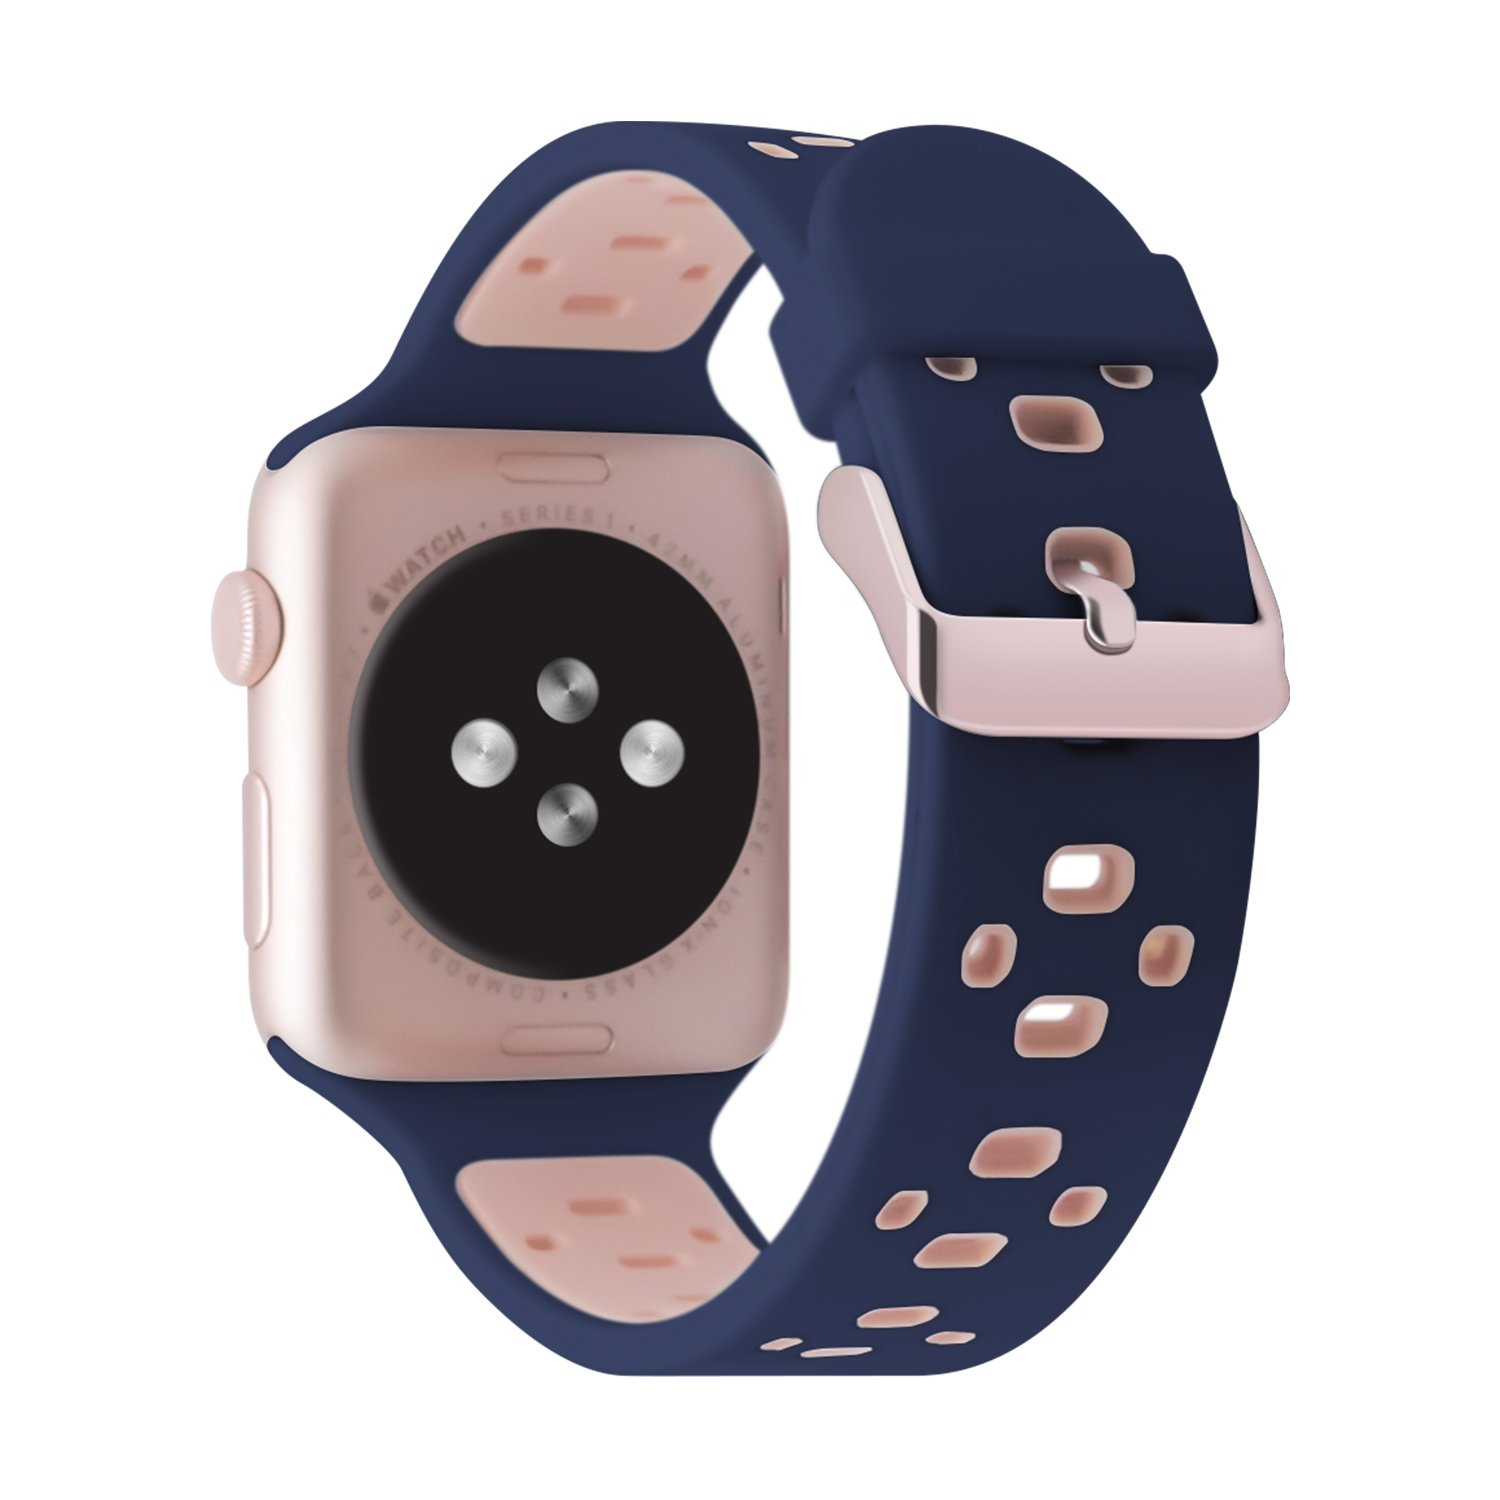 Apple Watch Series 3 band 38mm, iBazal Apple Watch Band Silicone Band Sport Band with FREE TPU Protective Case for 38mm Apple Watch Nike+, Series 3, Series 2, Series 1 (4-blue/pink 38)